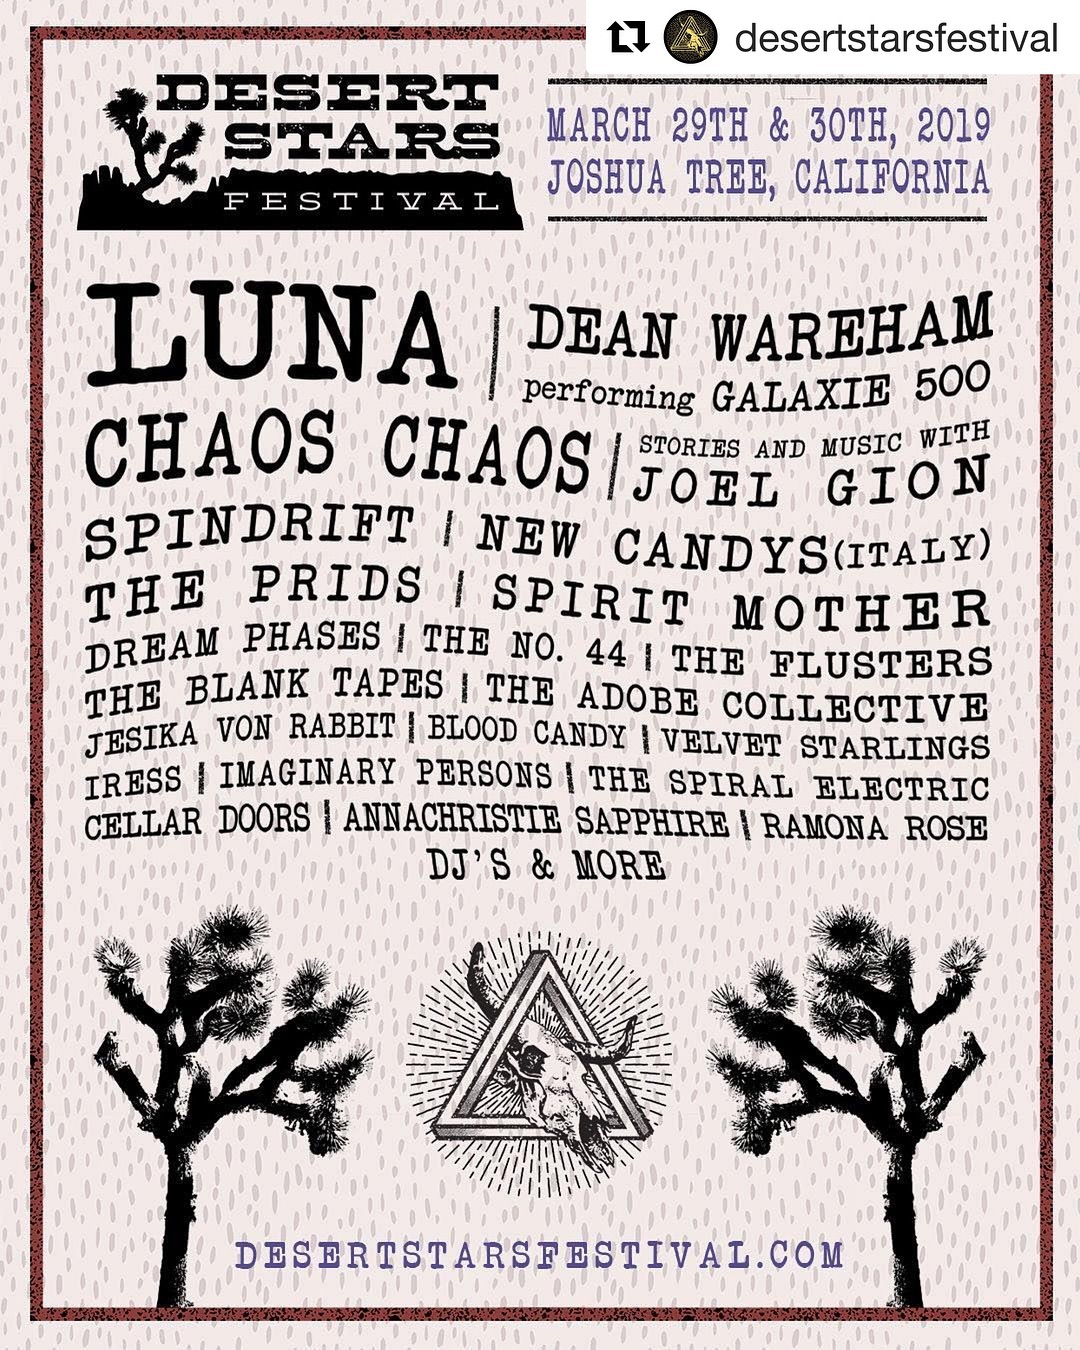 03/29&30 this time held more directly near Joshua Tree DT area @spindriftwest #spindrift @desertstarsfestival @jesikavonrabbit @newcandys @joelgion @teepeerecords @theblanktapes @dreamphases @thespiralelectric #spindrift @thecellardoorsmusic @theflusters @divinedroidrecords @alternativetentacles @xemu_records_official